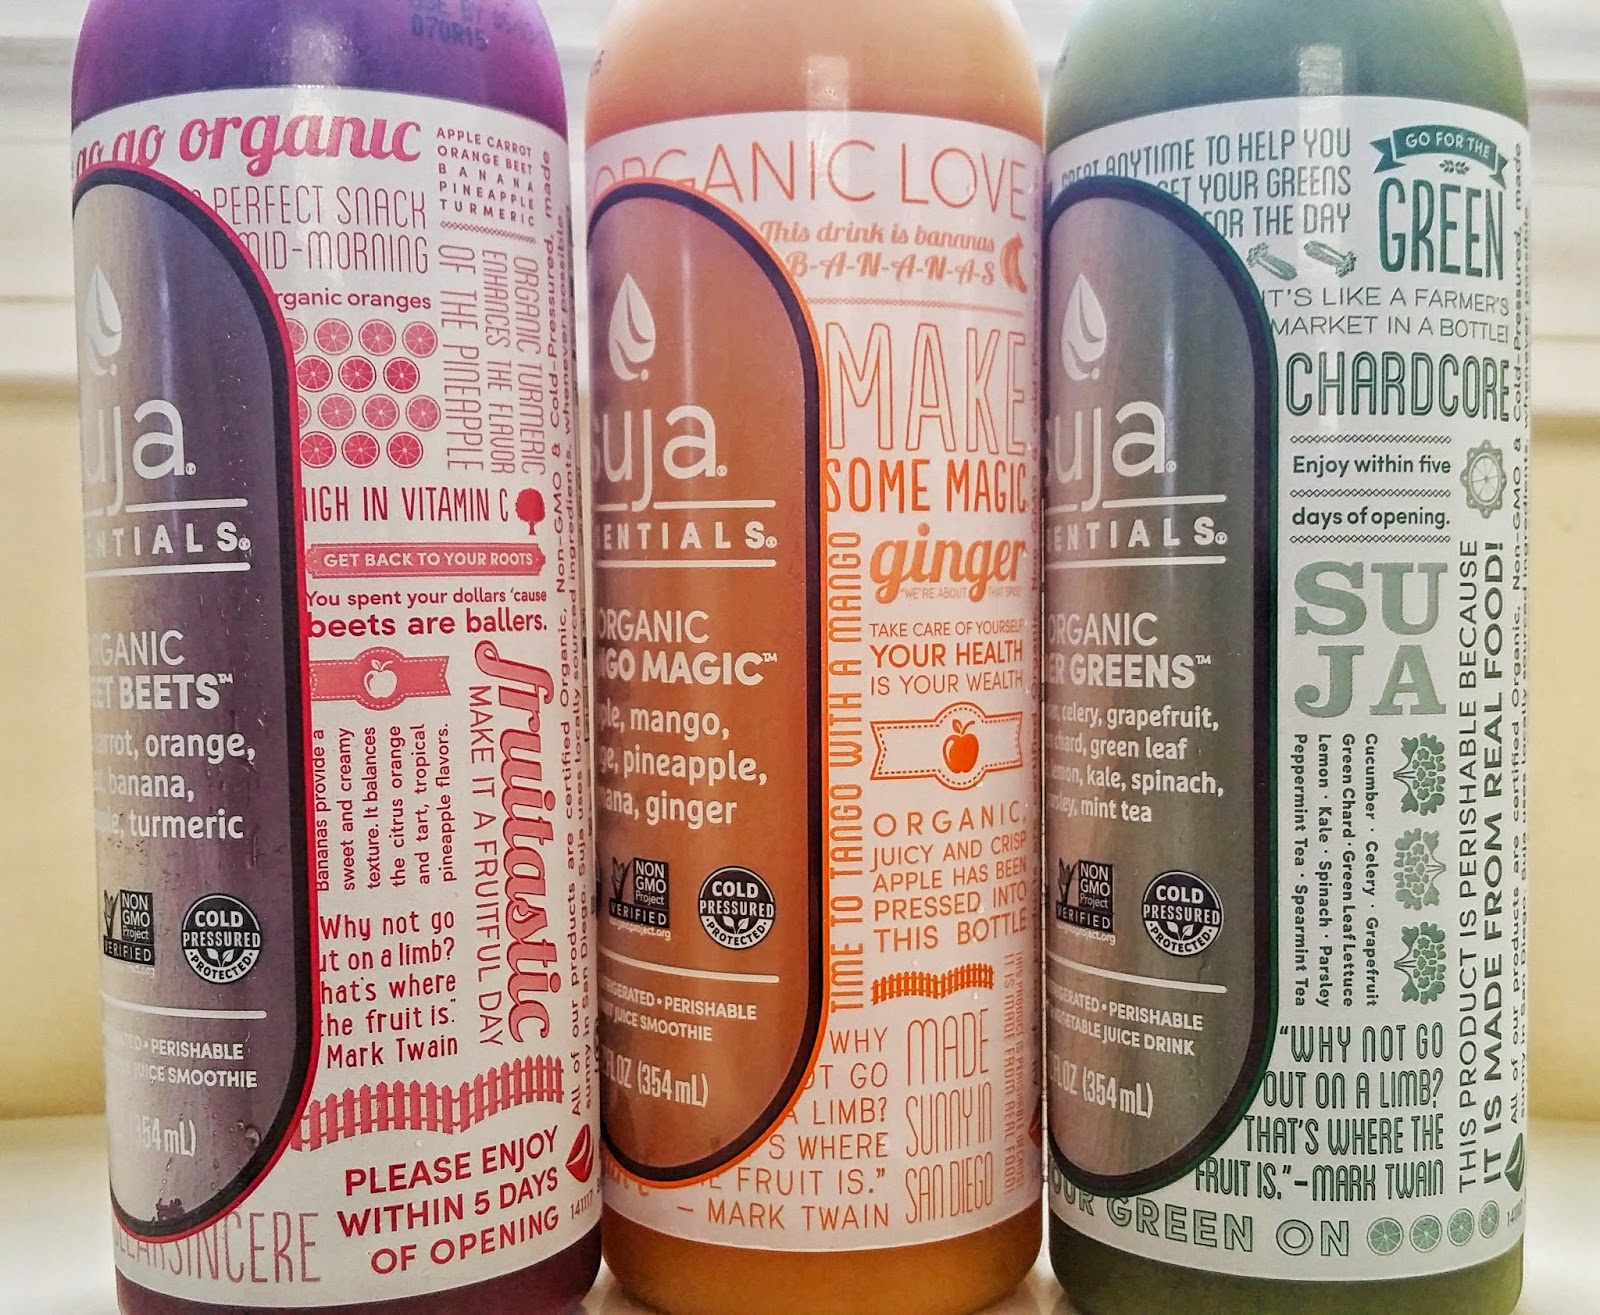 Suja is so good